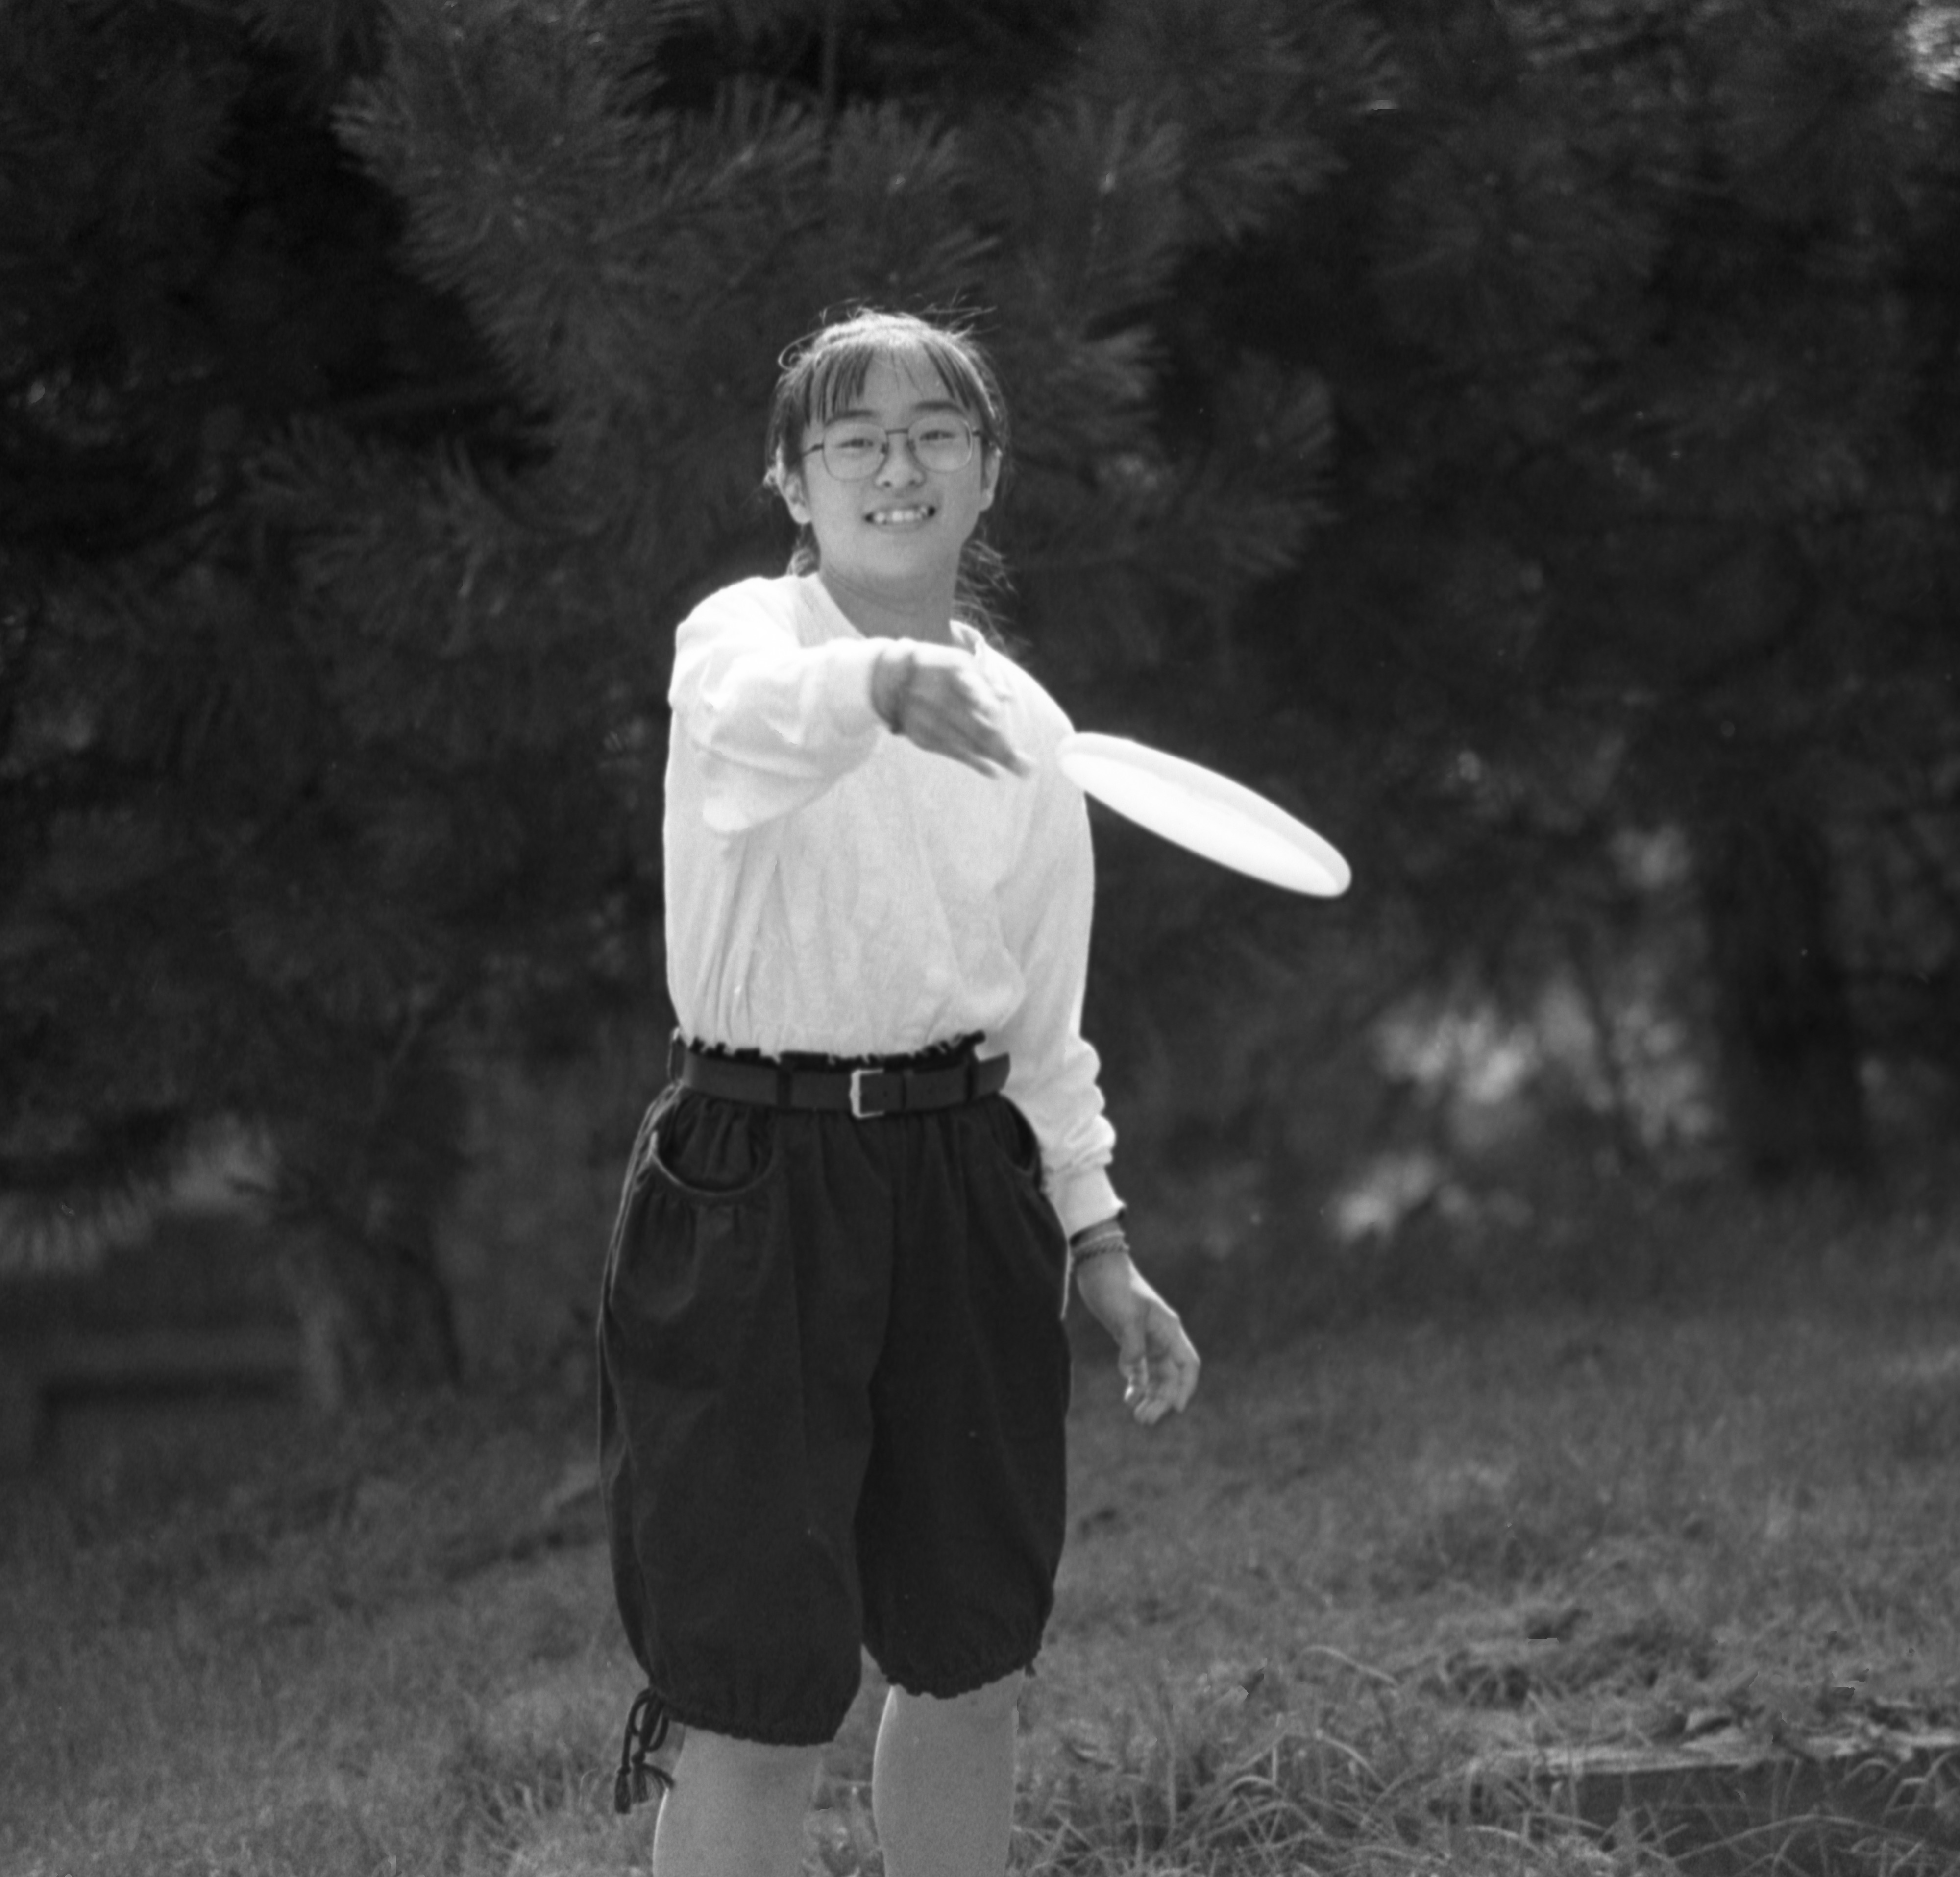 Visitor From Sister City, Hikone, Japan, Learn How To Throw A Frisbee At Hikone Housing Project, September 17, 1988 image